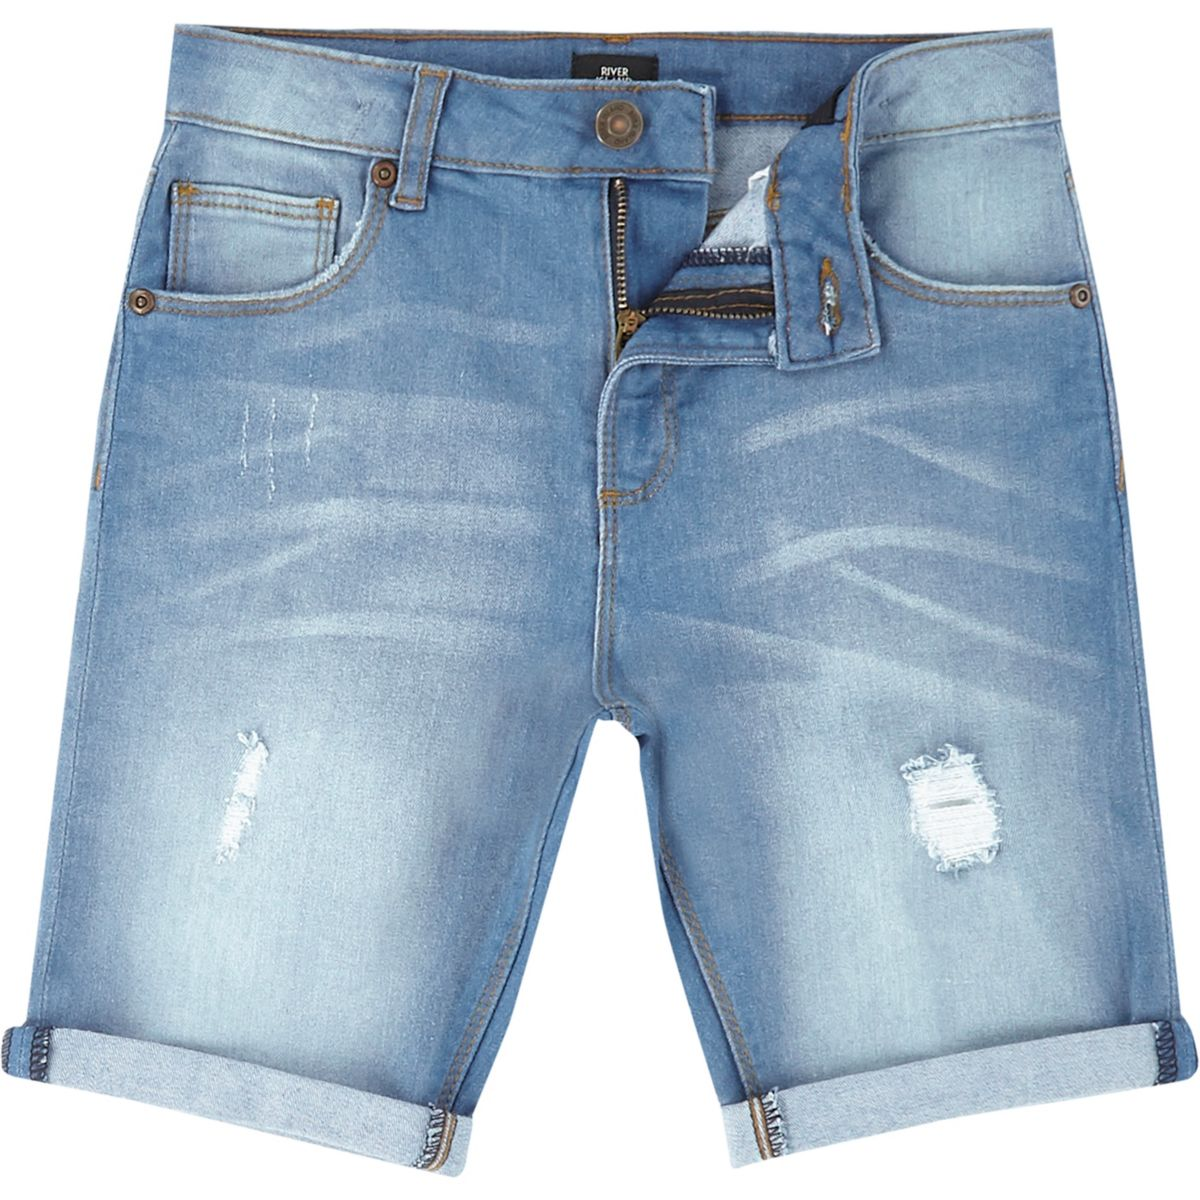 Boys light blue distressed denim shorts - Denim Shorts - Shorts - boys